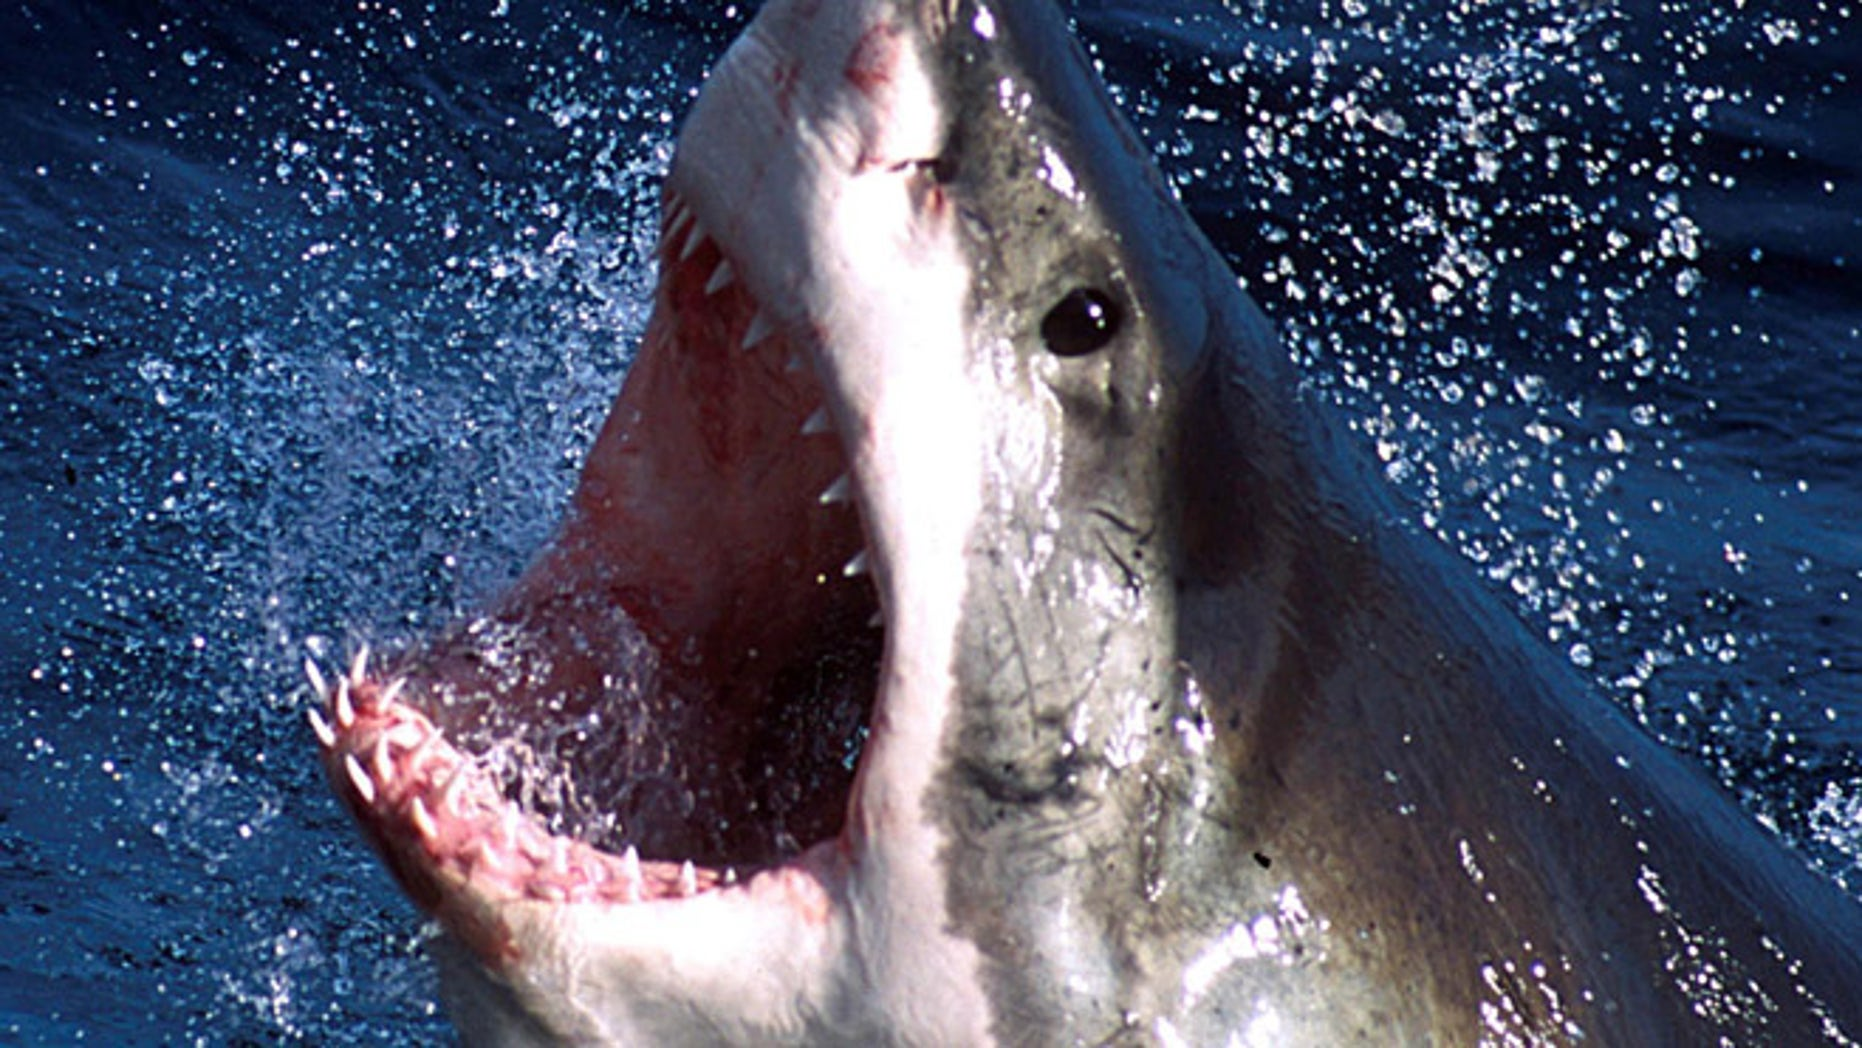 FILE 2002: Authorities have determined that the man who suffered leg injuries while swimming off the coast of Cape Cod last month was bitten by a great white shark.